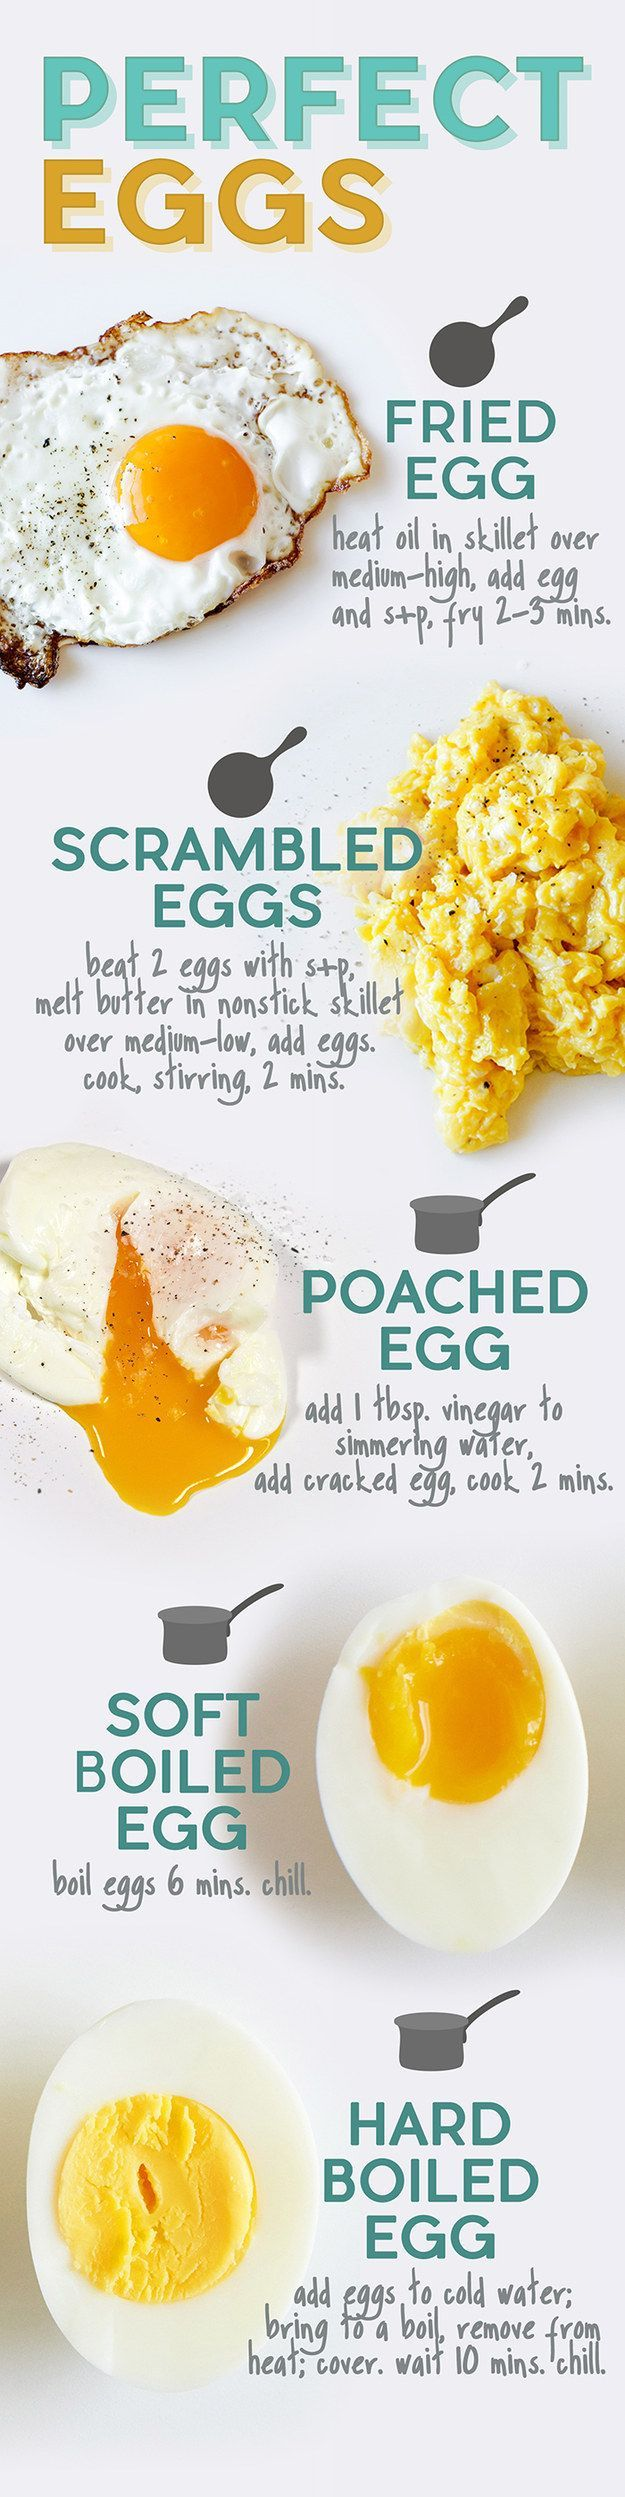 For more tips on how to perfectly cook every type of egg, head HERE. | How To Perfectly Hard-Boil (and Soft-Boil) Your Eggs